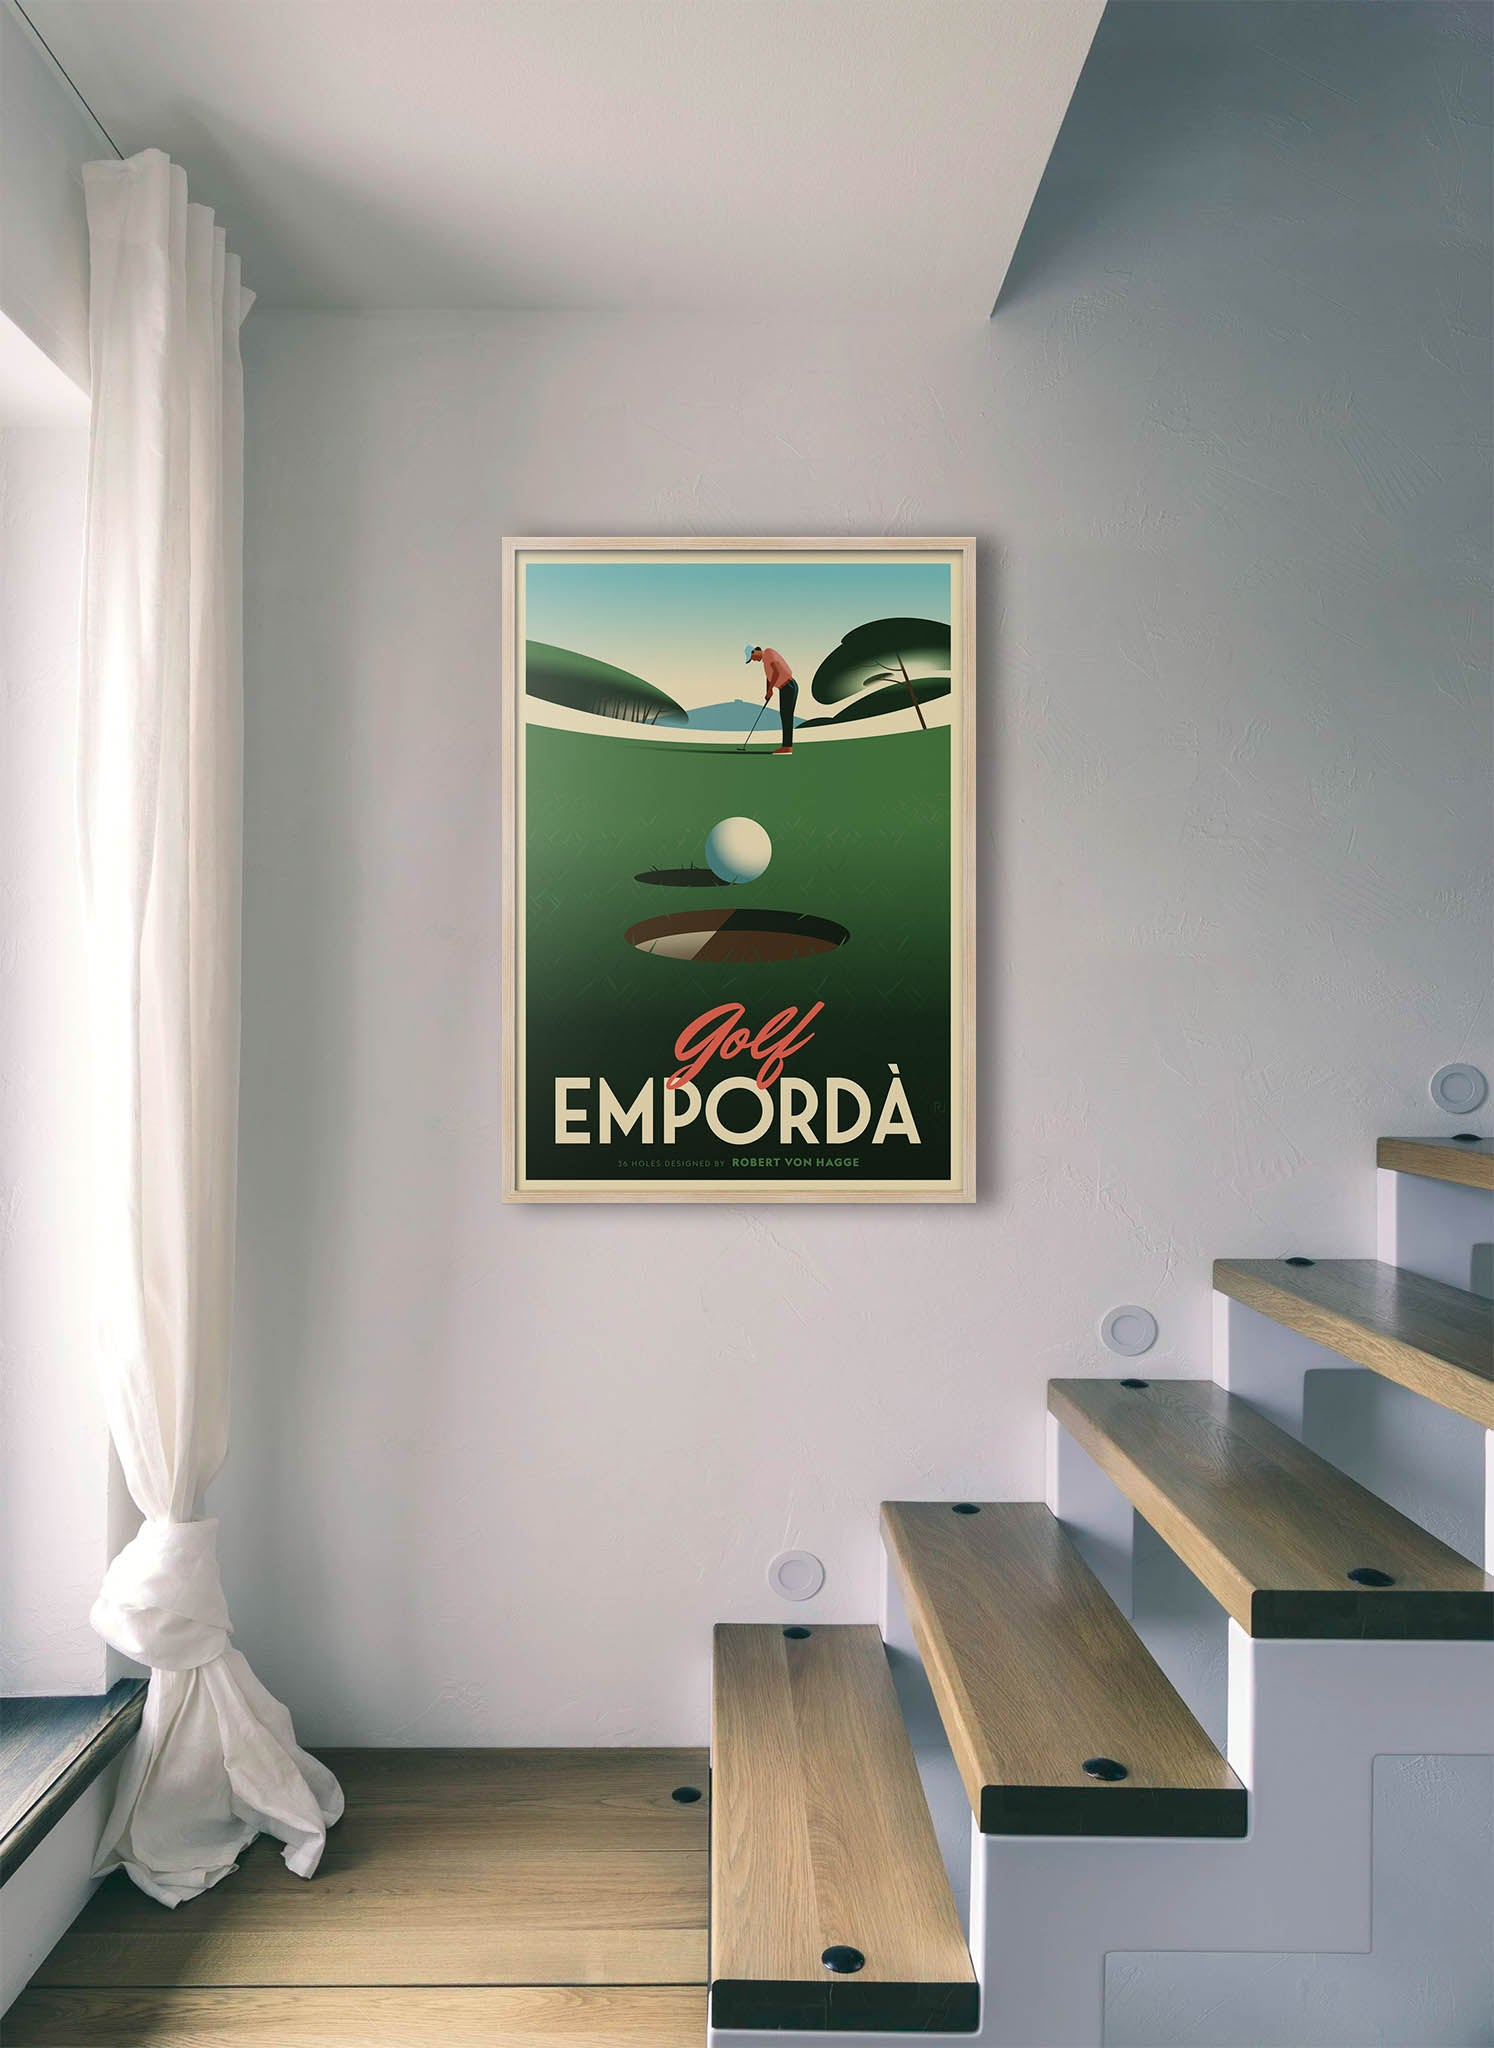 A golf ball in a hole after putting by Ricard Jorge.  Print without margin framed in natural wood